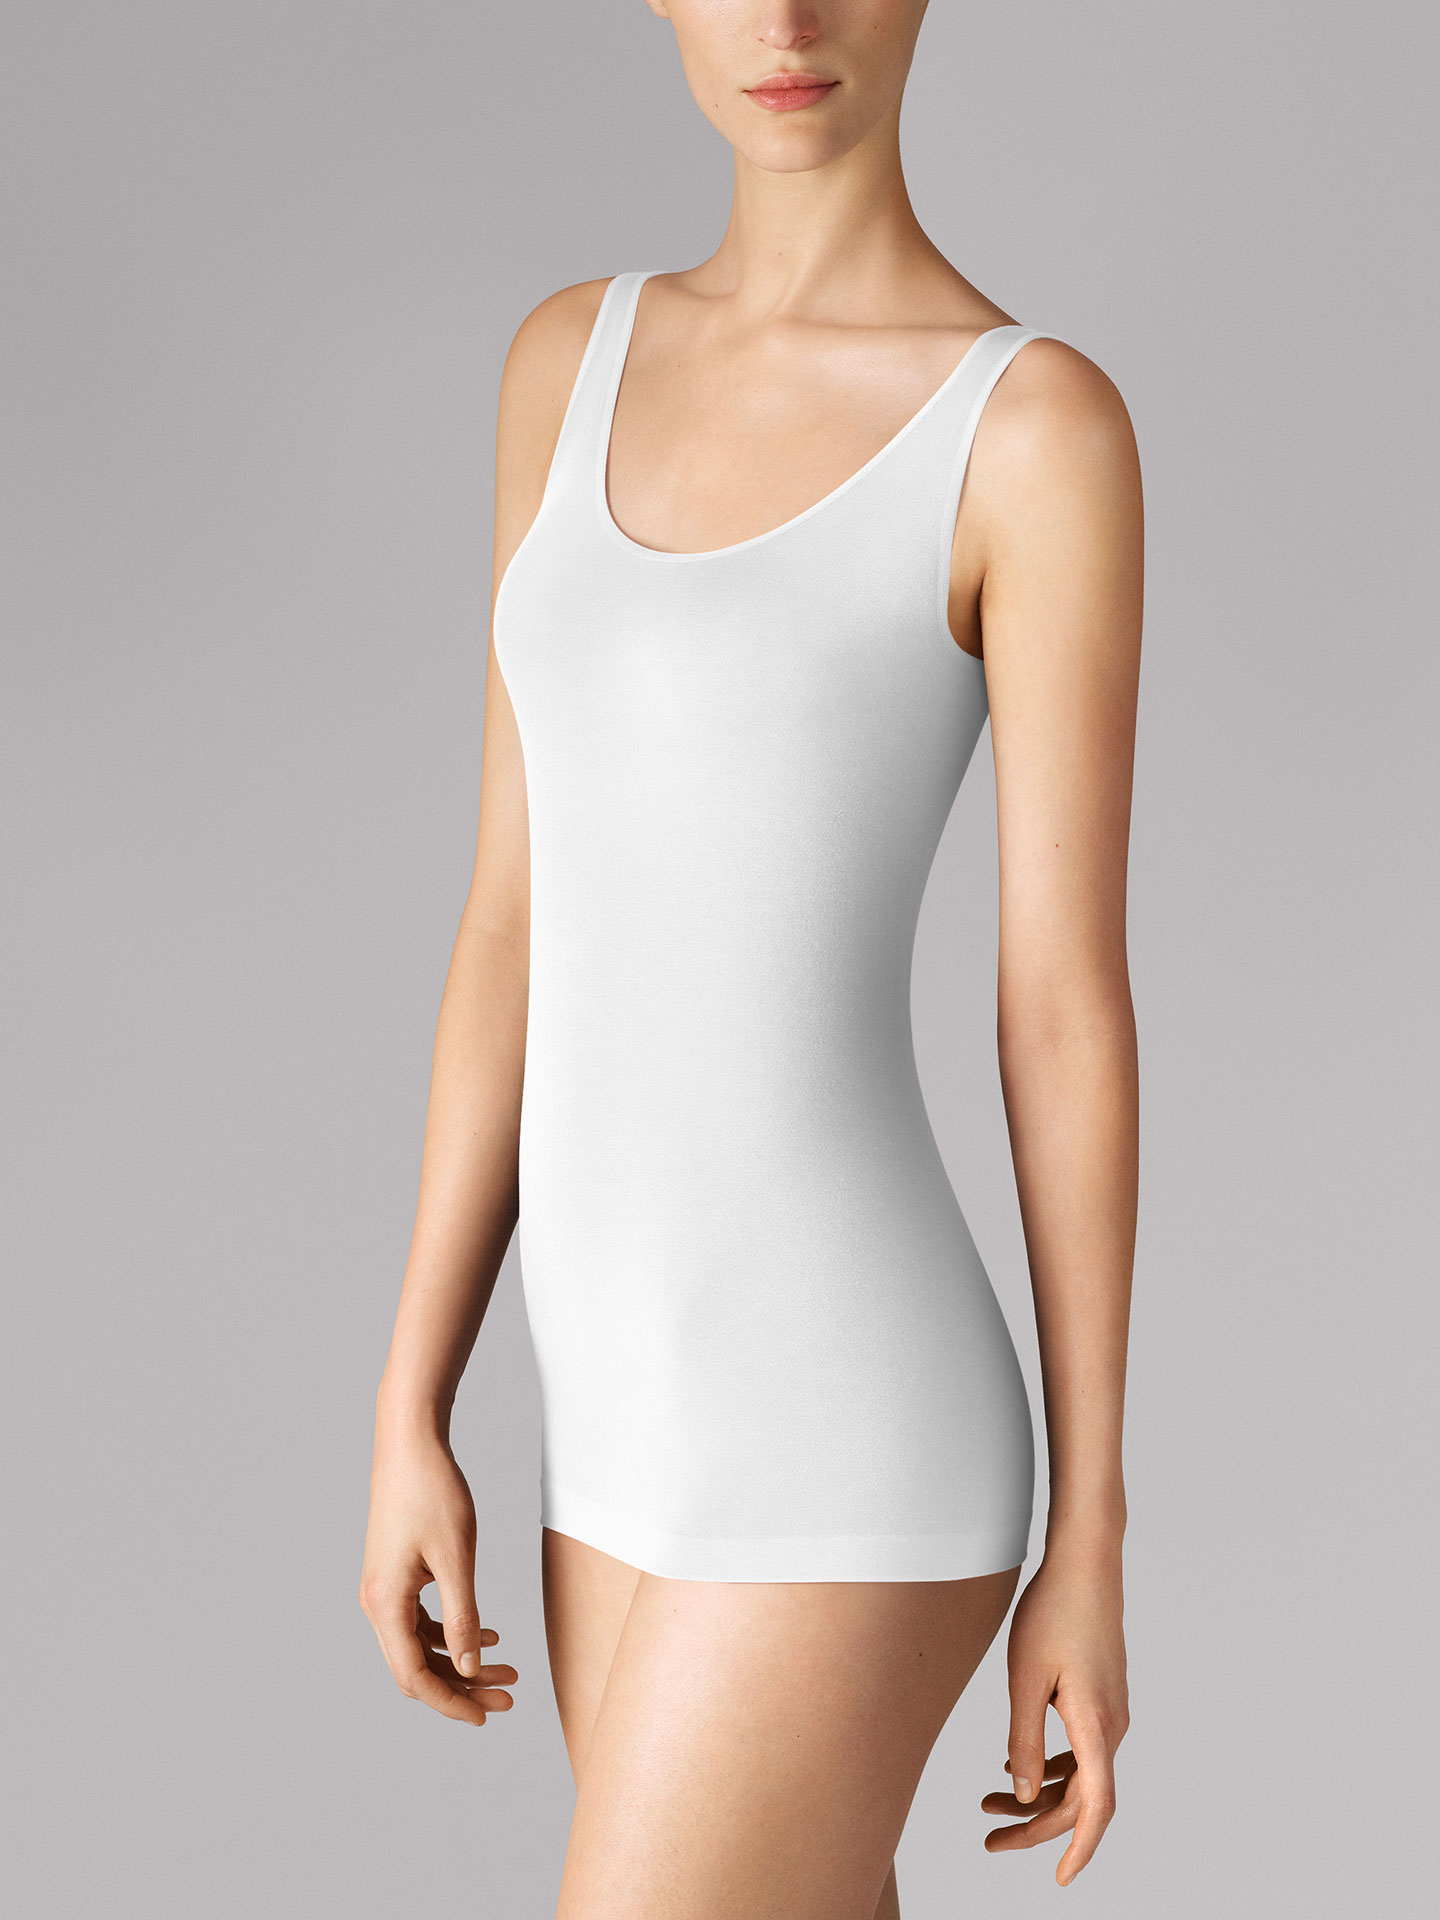 prezzo Wolford Apparel & Accessories > Clothing > Tops Bali Top 1001 M in offerta